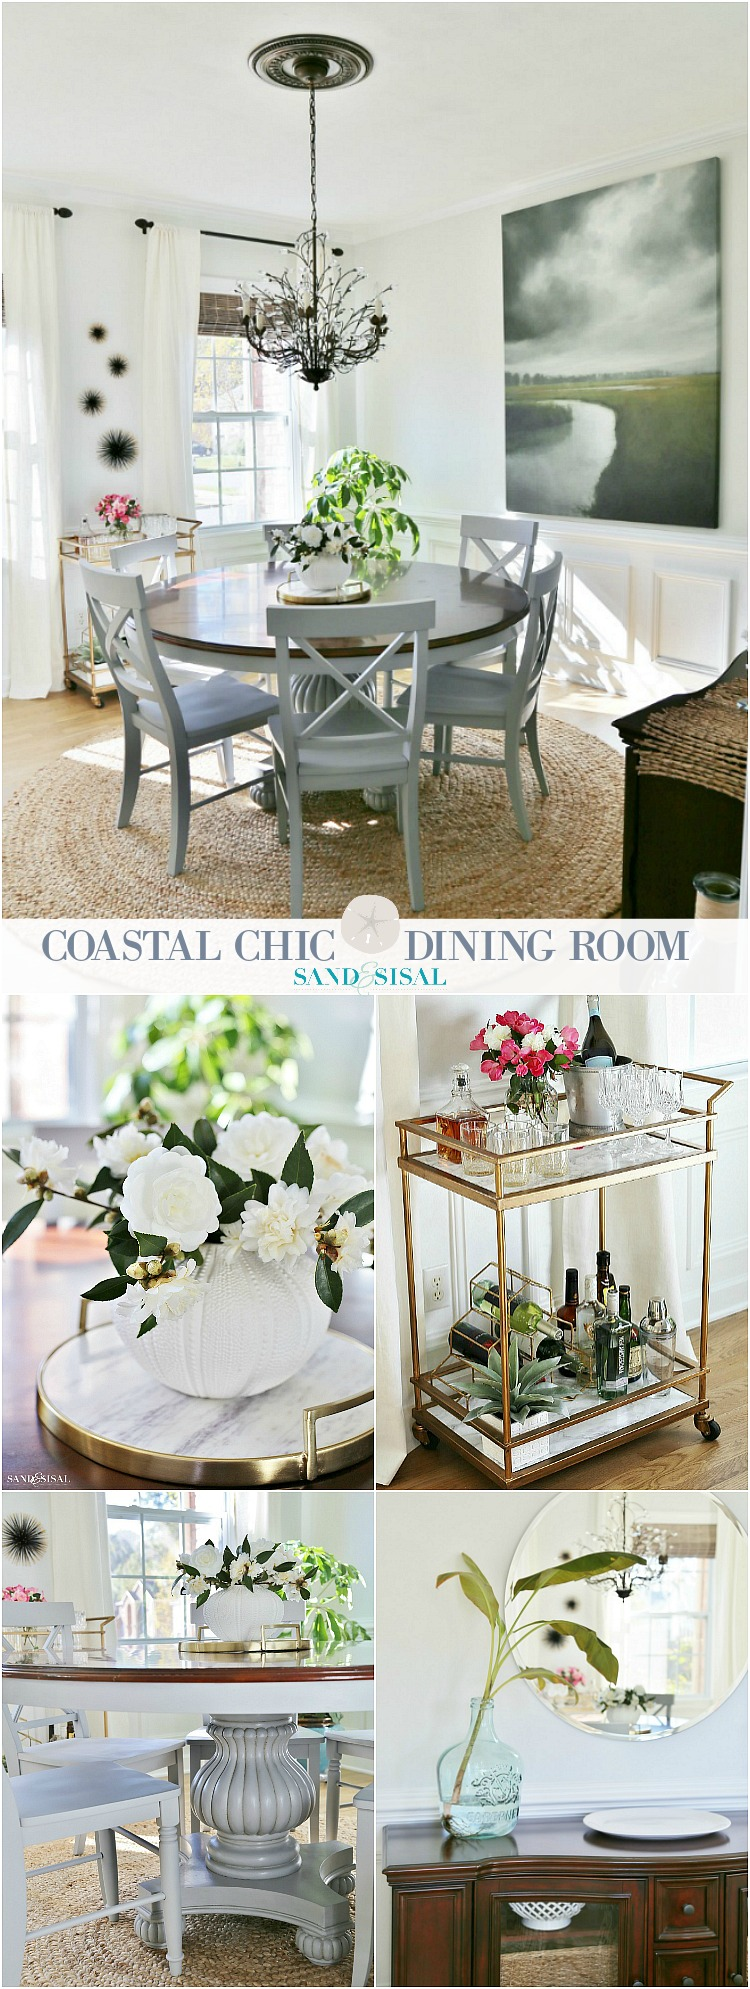 A Coastal Chic Dining Room Makeover - Sand and Sisal